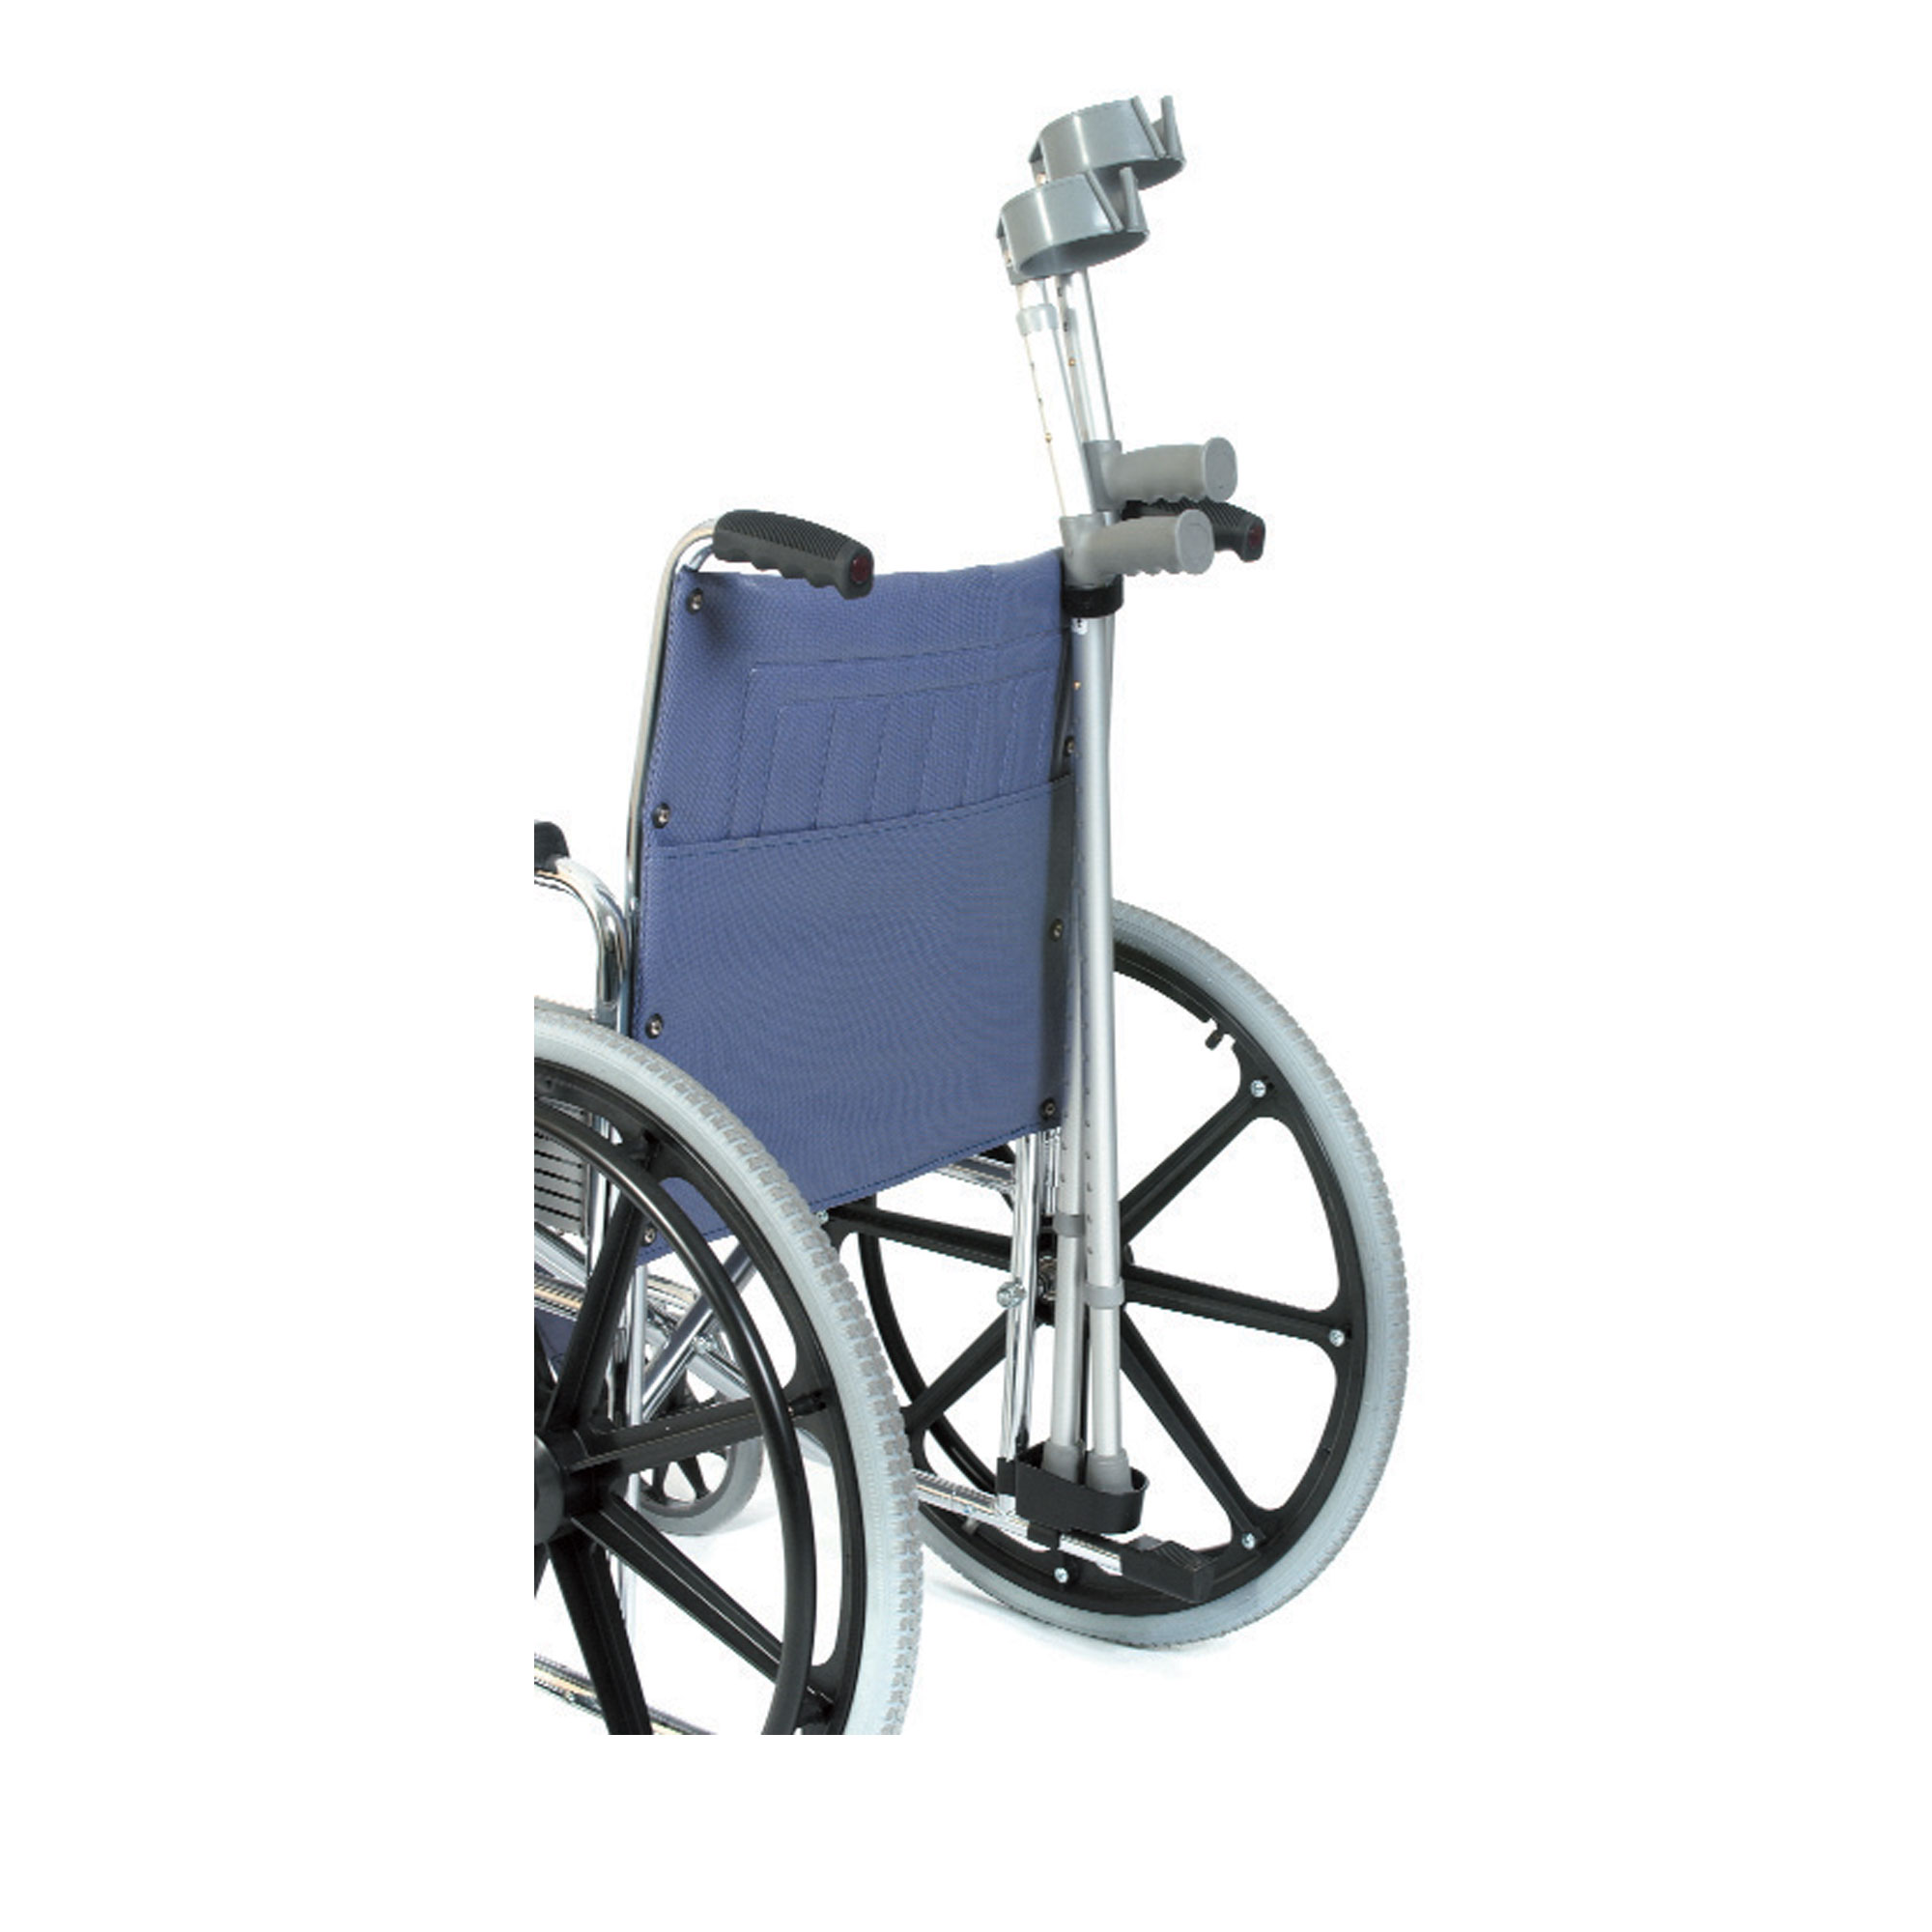 Walking Chair Ac120 Crutch And Walking Stick Holder Standard Chair